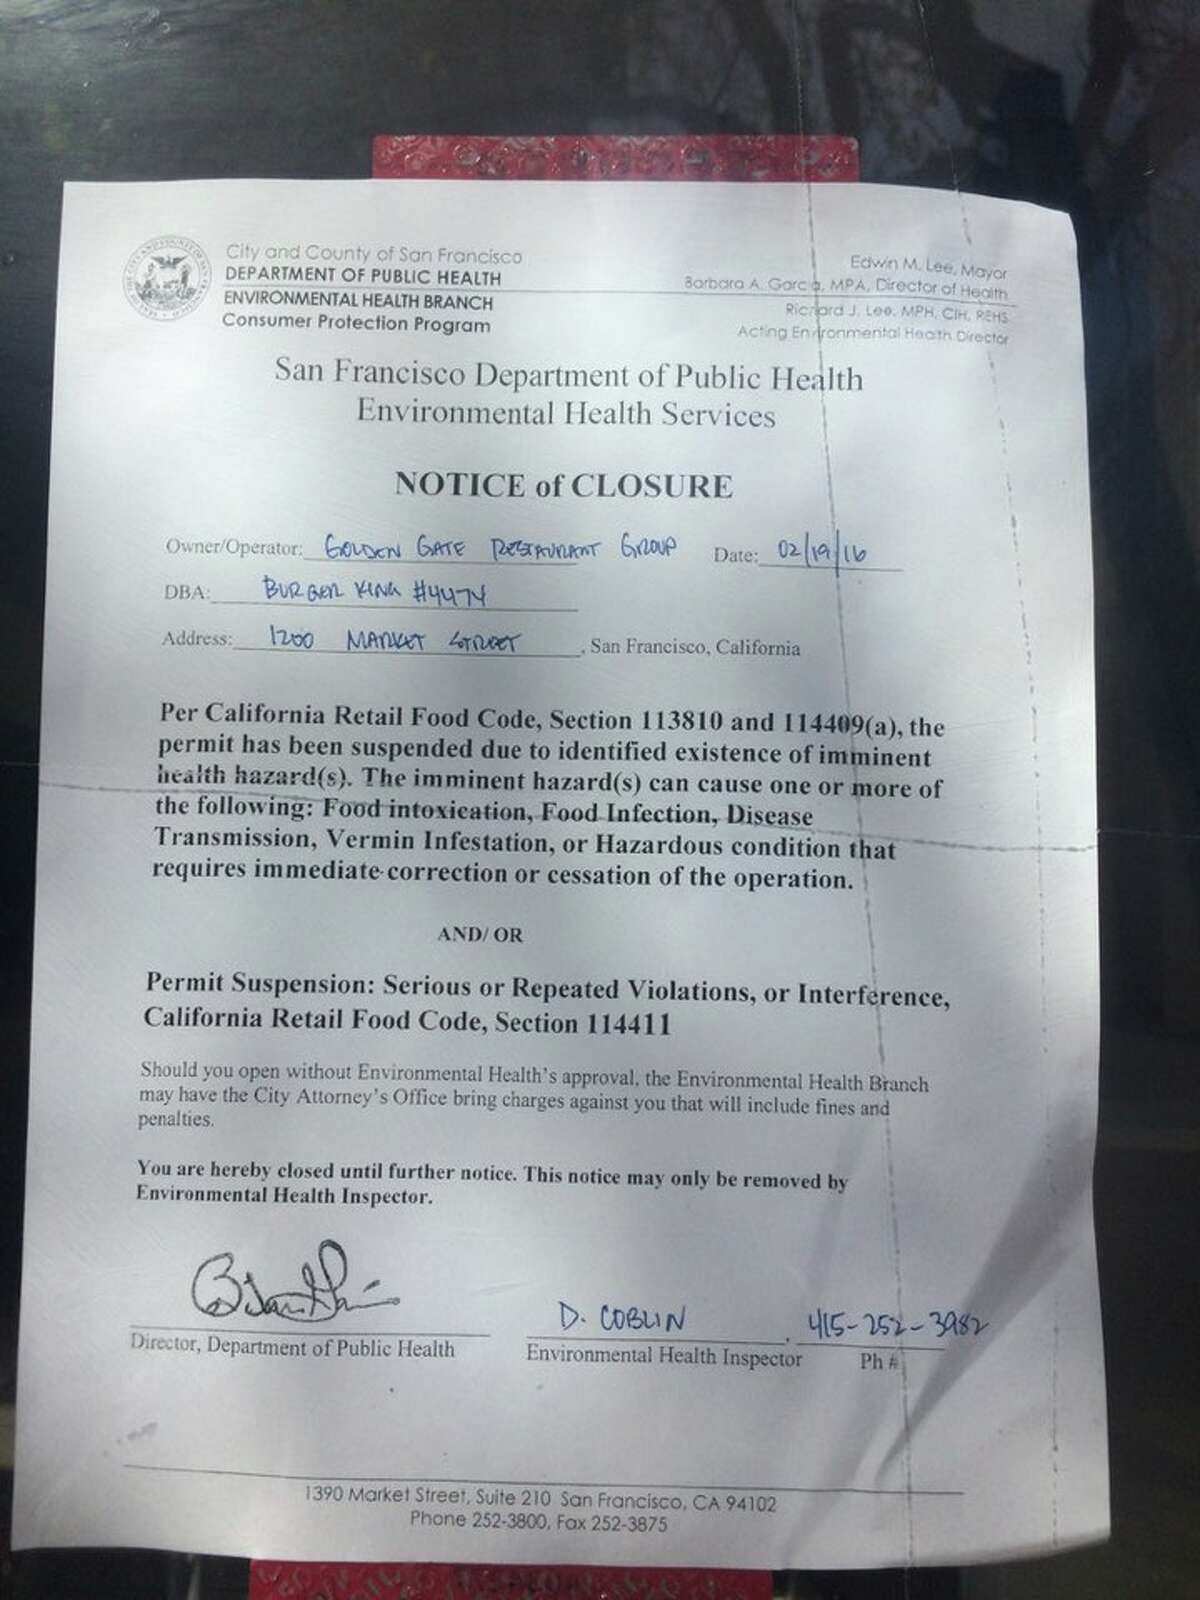 The notice of closure posted at the Market Street location of Burger King.